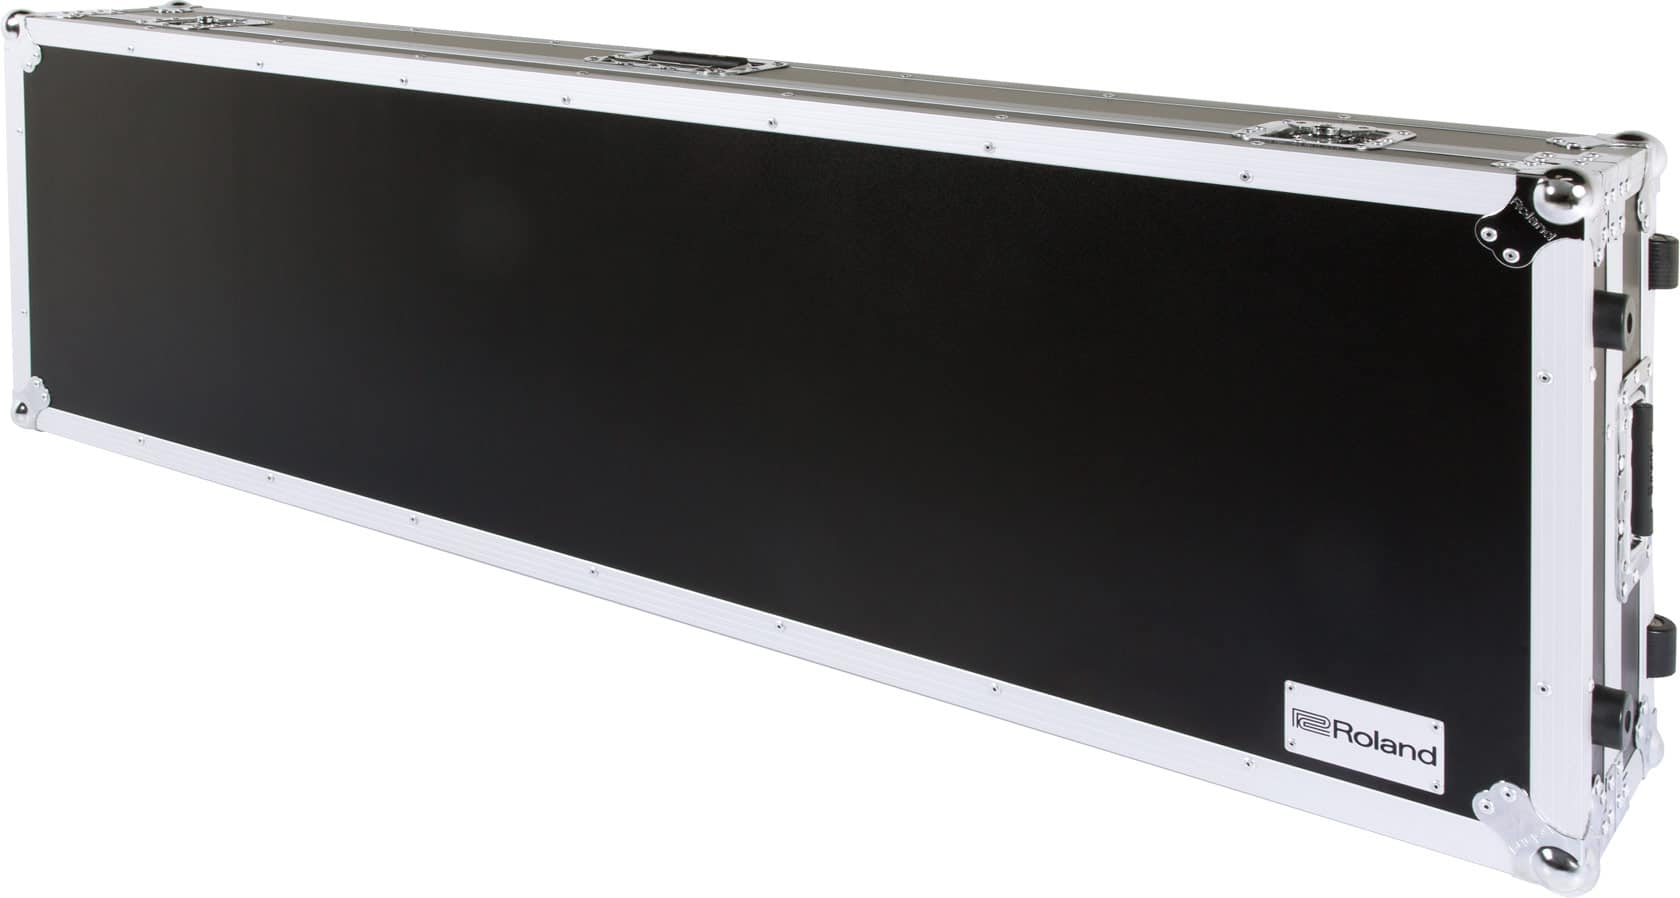 roland-rrc-88w-heavy-duty-road-case-for-88-note-keyboards MAIN